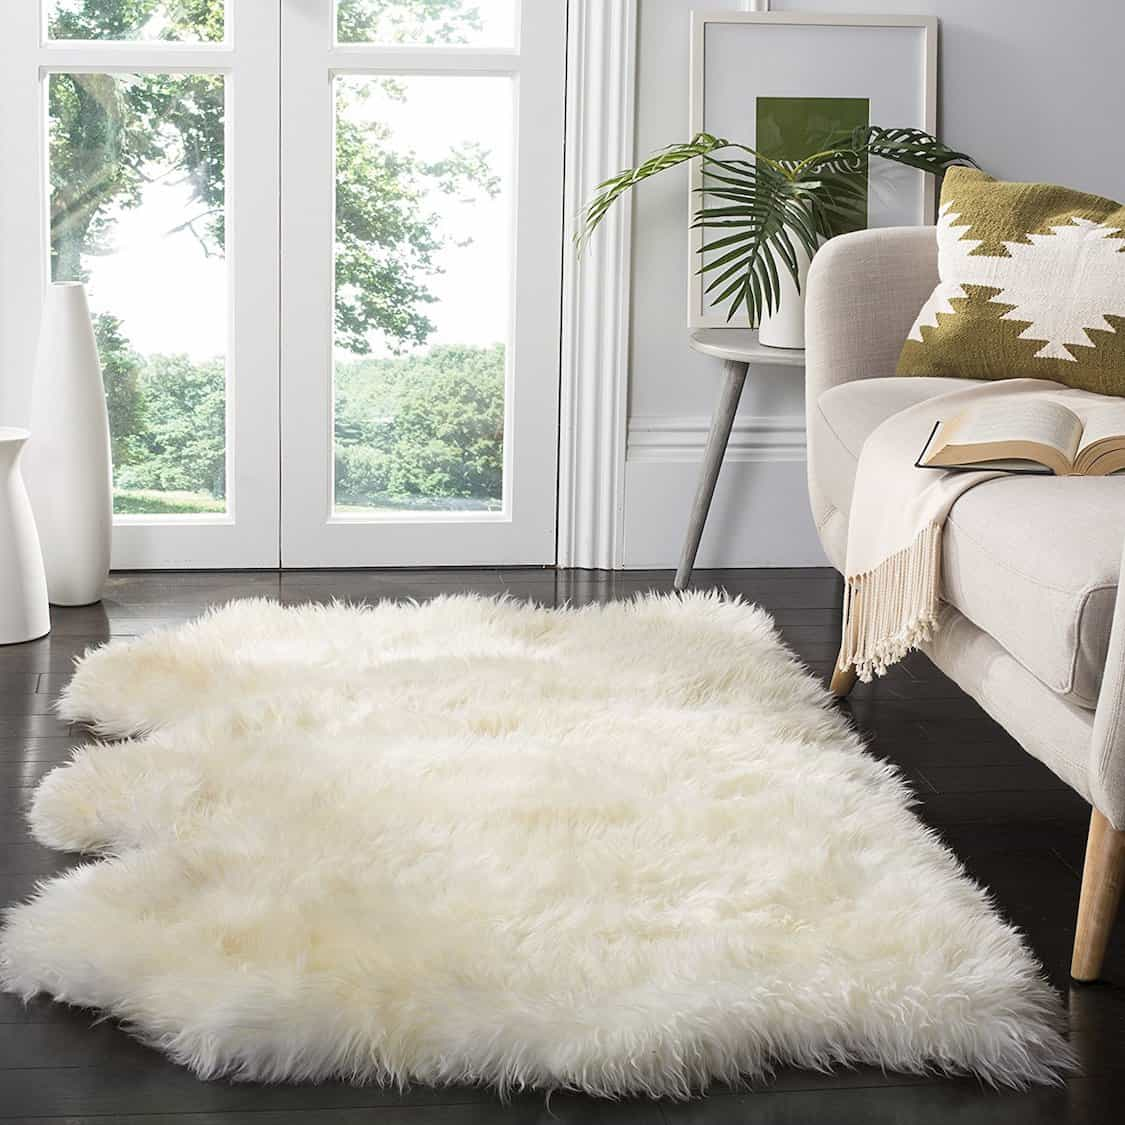 Large Ivory White Sheepskin Rug (View 3 of 15)